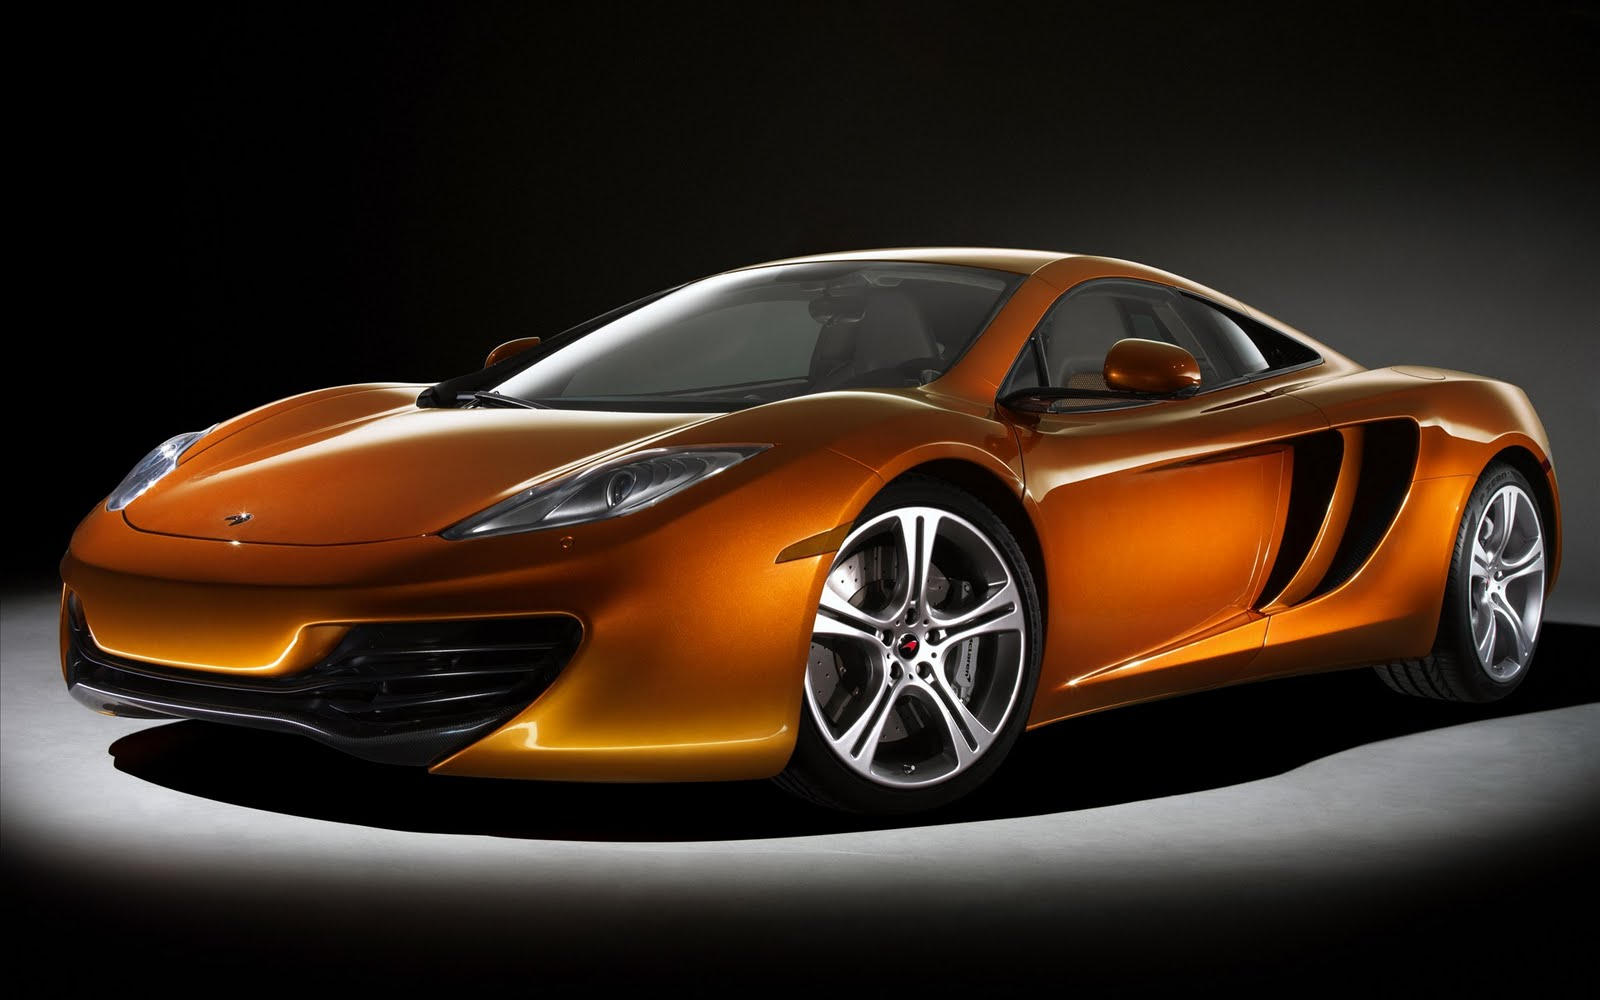 Car wallpapers for desktop 2011 1600x1000